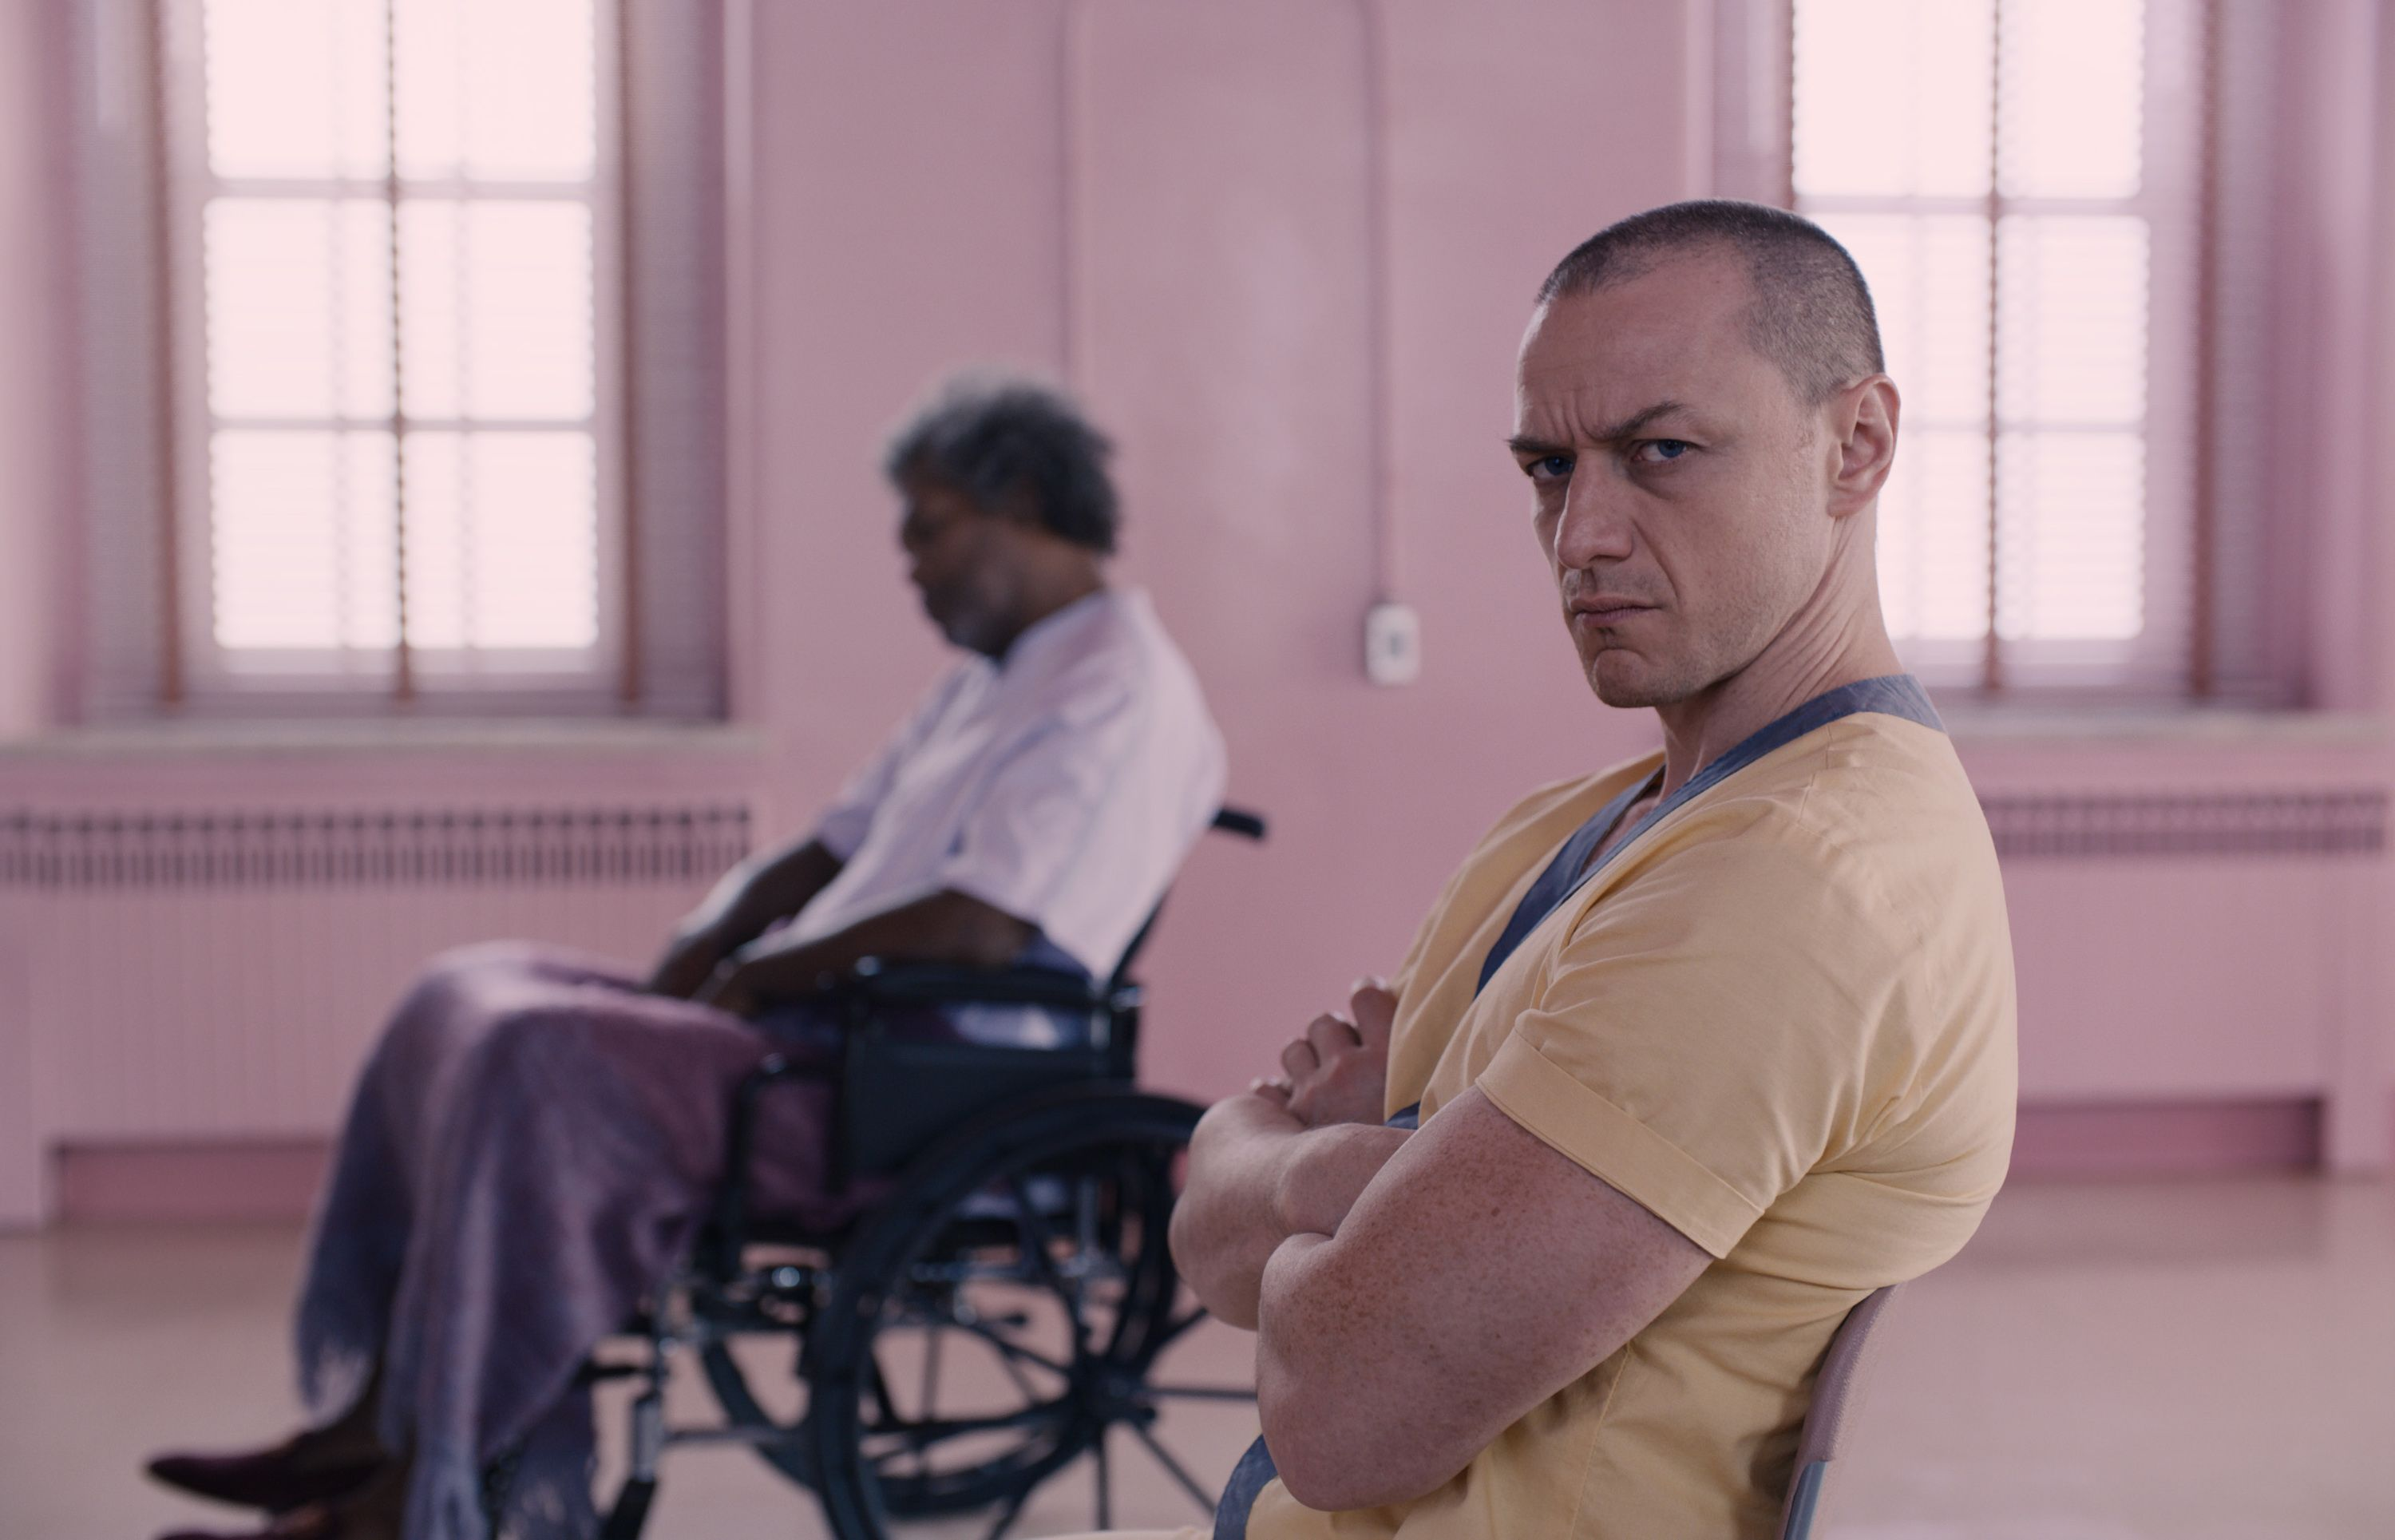 Glass Movie Review - M. Night Shaymalan Film Is a Middle Finger to Superhero Genre